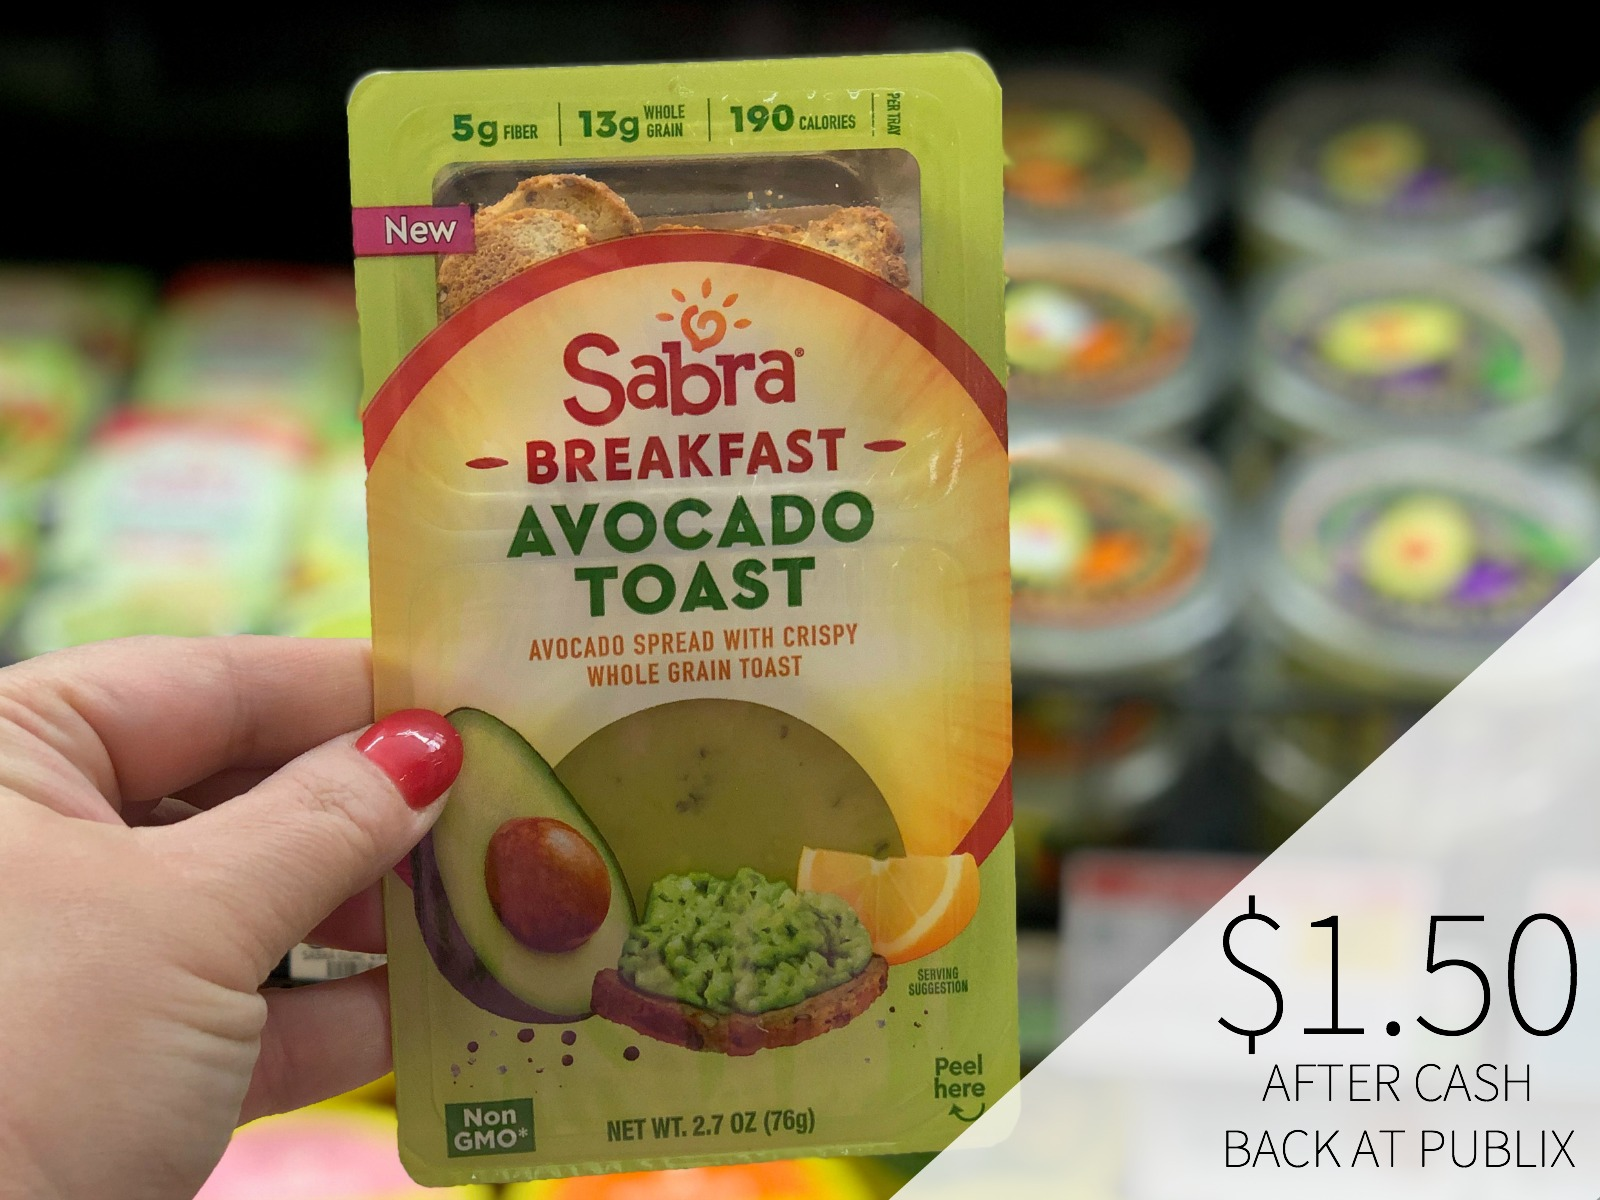 Find New Sabra Breakfast Avocado Toast& Sabra Breakfast Hummus Toast At Your Local Publix (Save With The Big Cash Back Offers!) on I Heart Publix 1